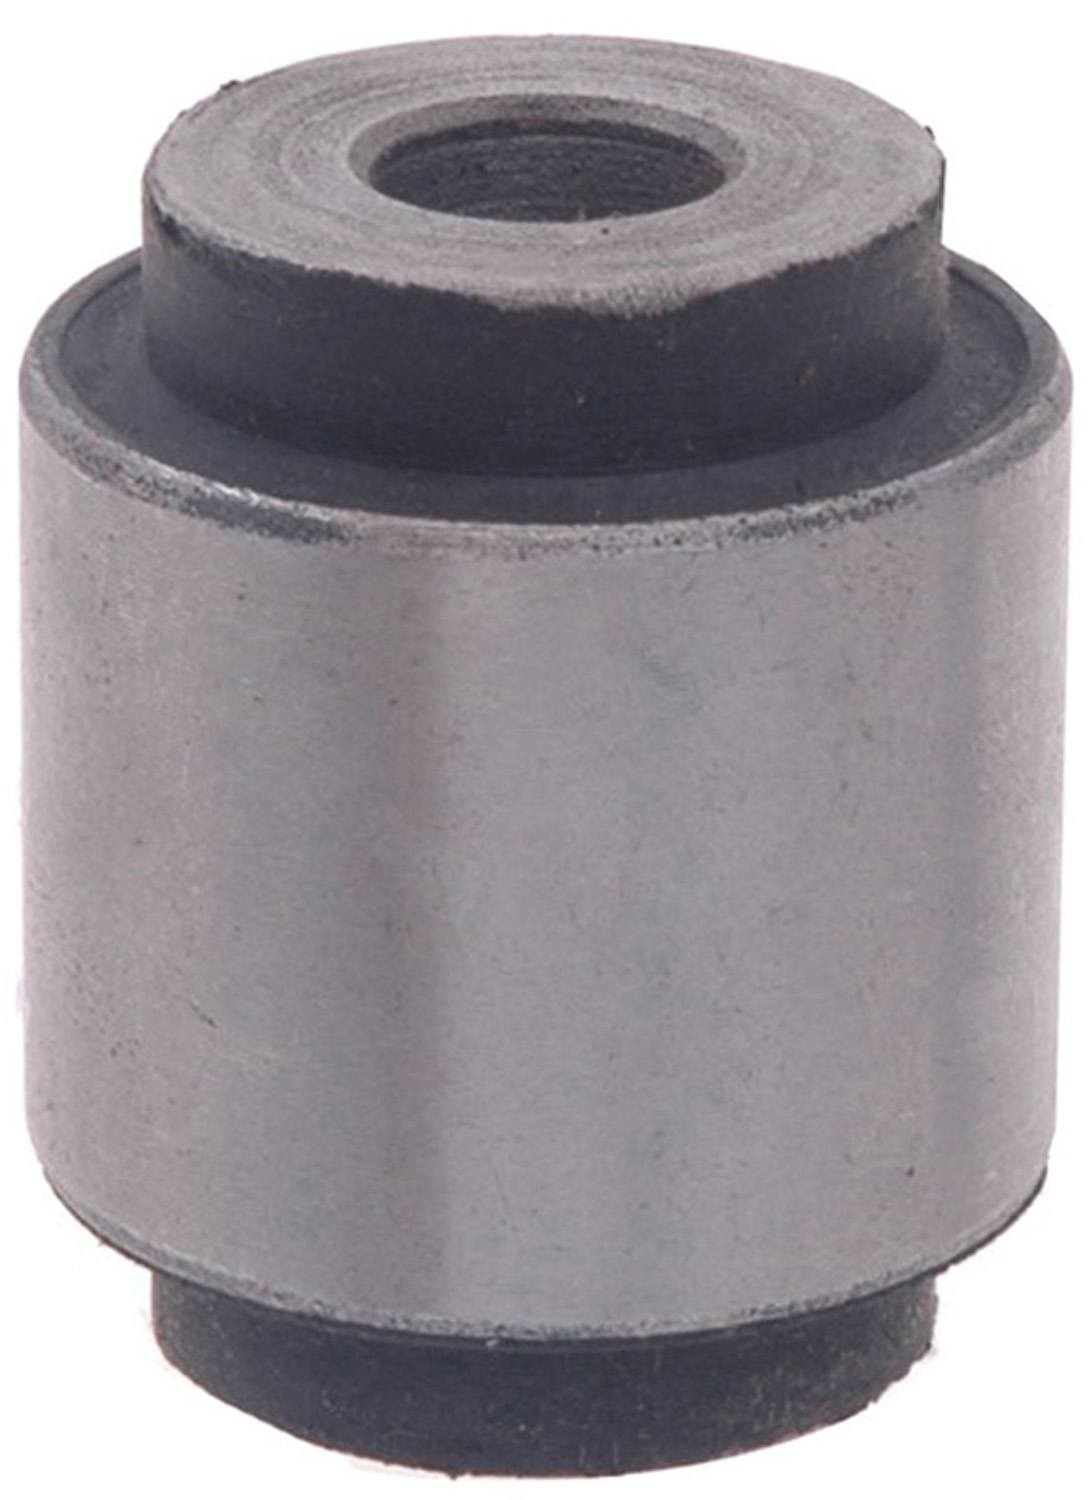 ACDELCO PROFESSIONAL - Shock Absorber Bushing - DCC 45G11141